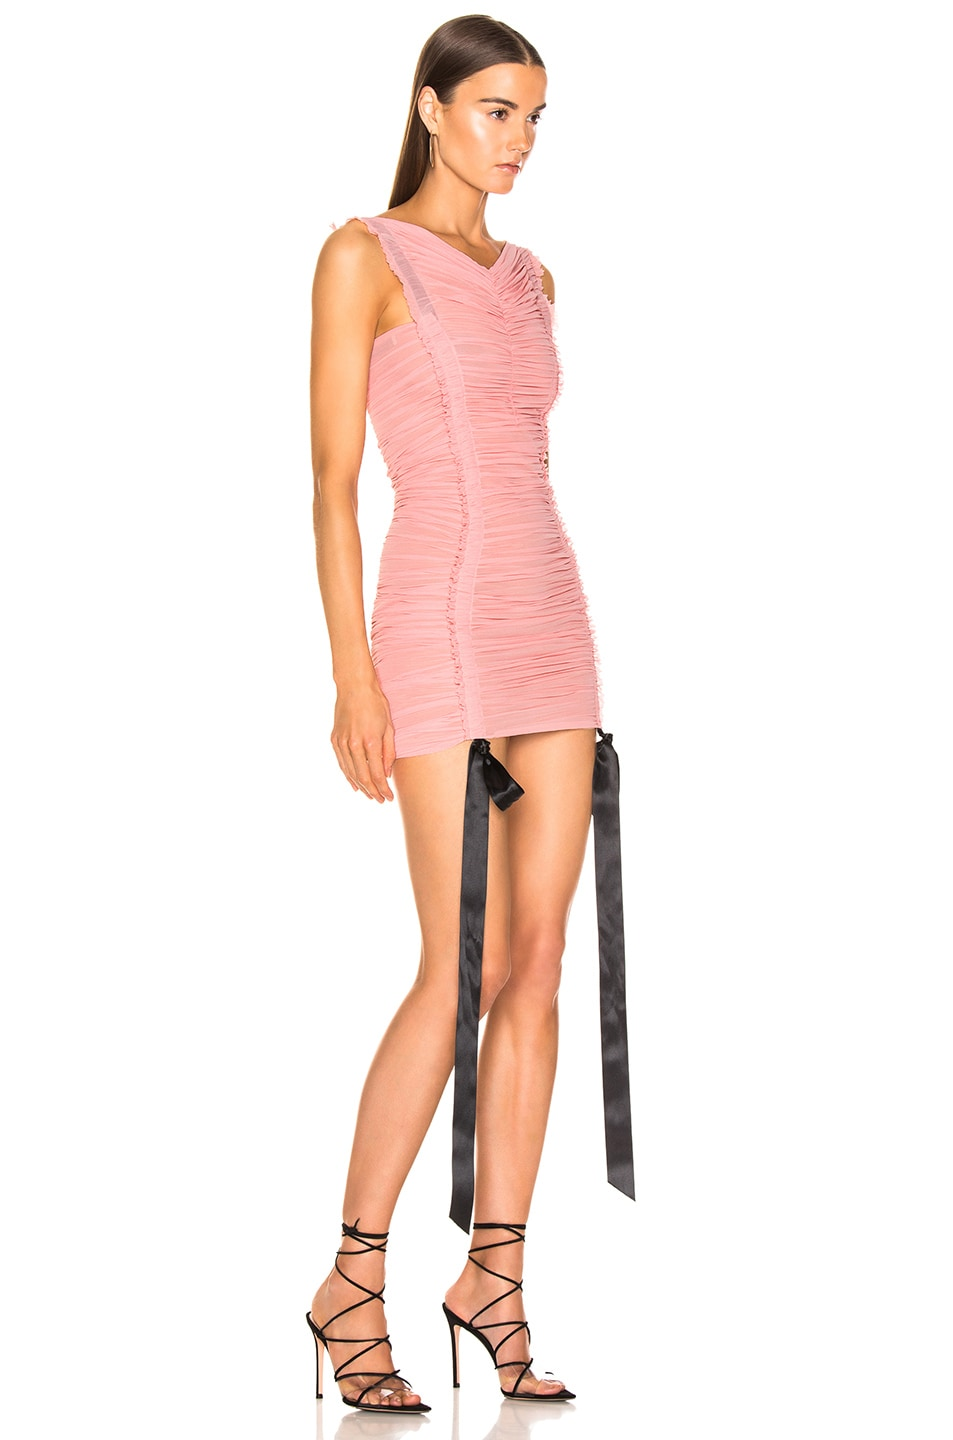 Image 2 of TRE by Natalie Ratabesi Cabaret Dress in Pink